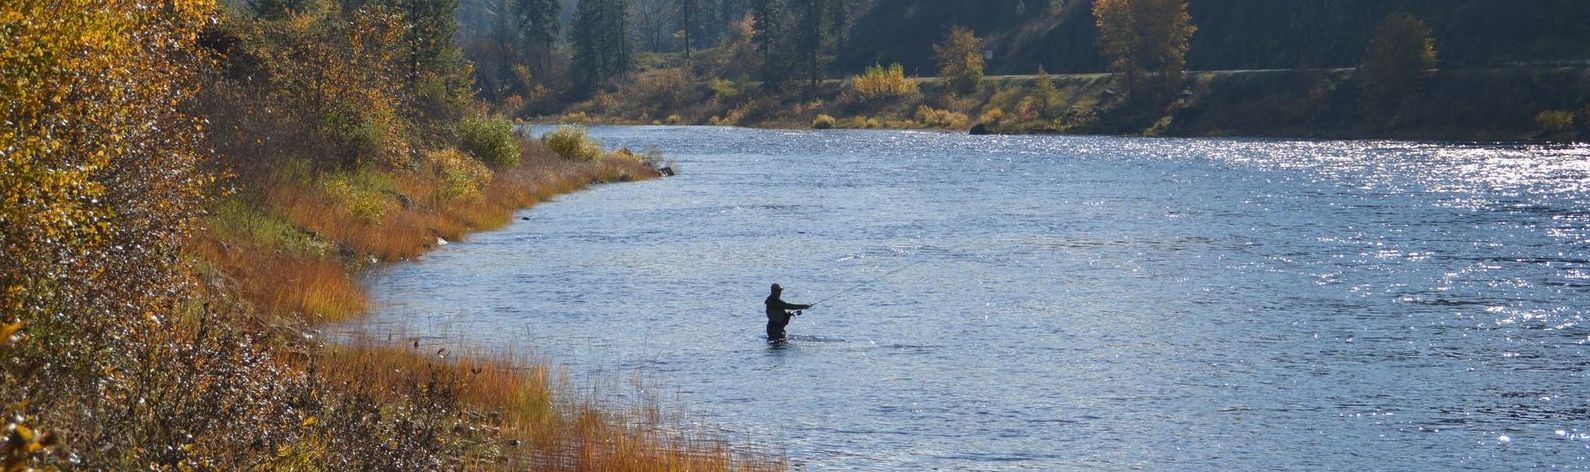 Restore Our Salmon and Steelhead